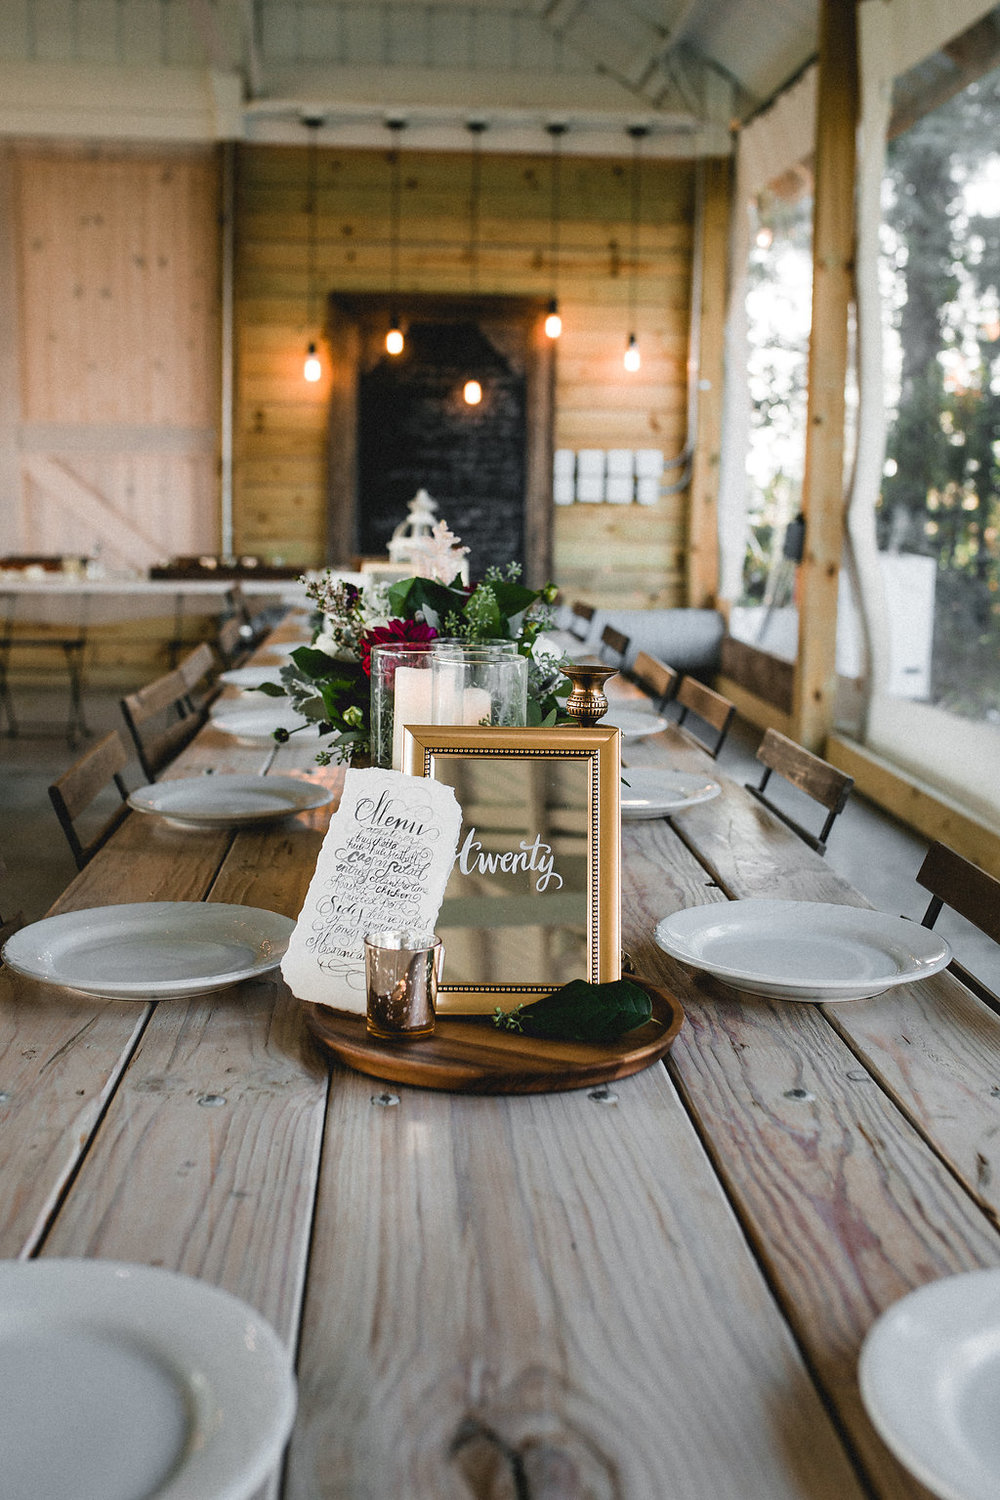 Leslee + Billy | Aqua Fox Photography | Legacy Hill Farm |  A Vintage Touch Weddings table design on bare tables with mirror table numbers and hand calligraphy menus | NO charger